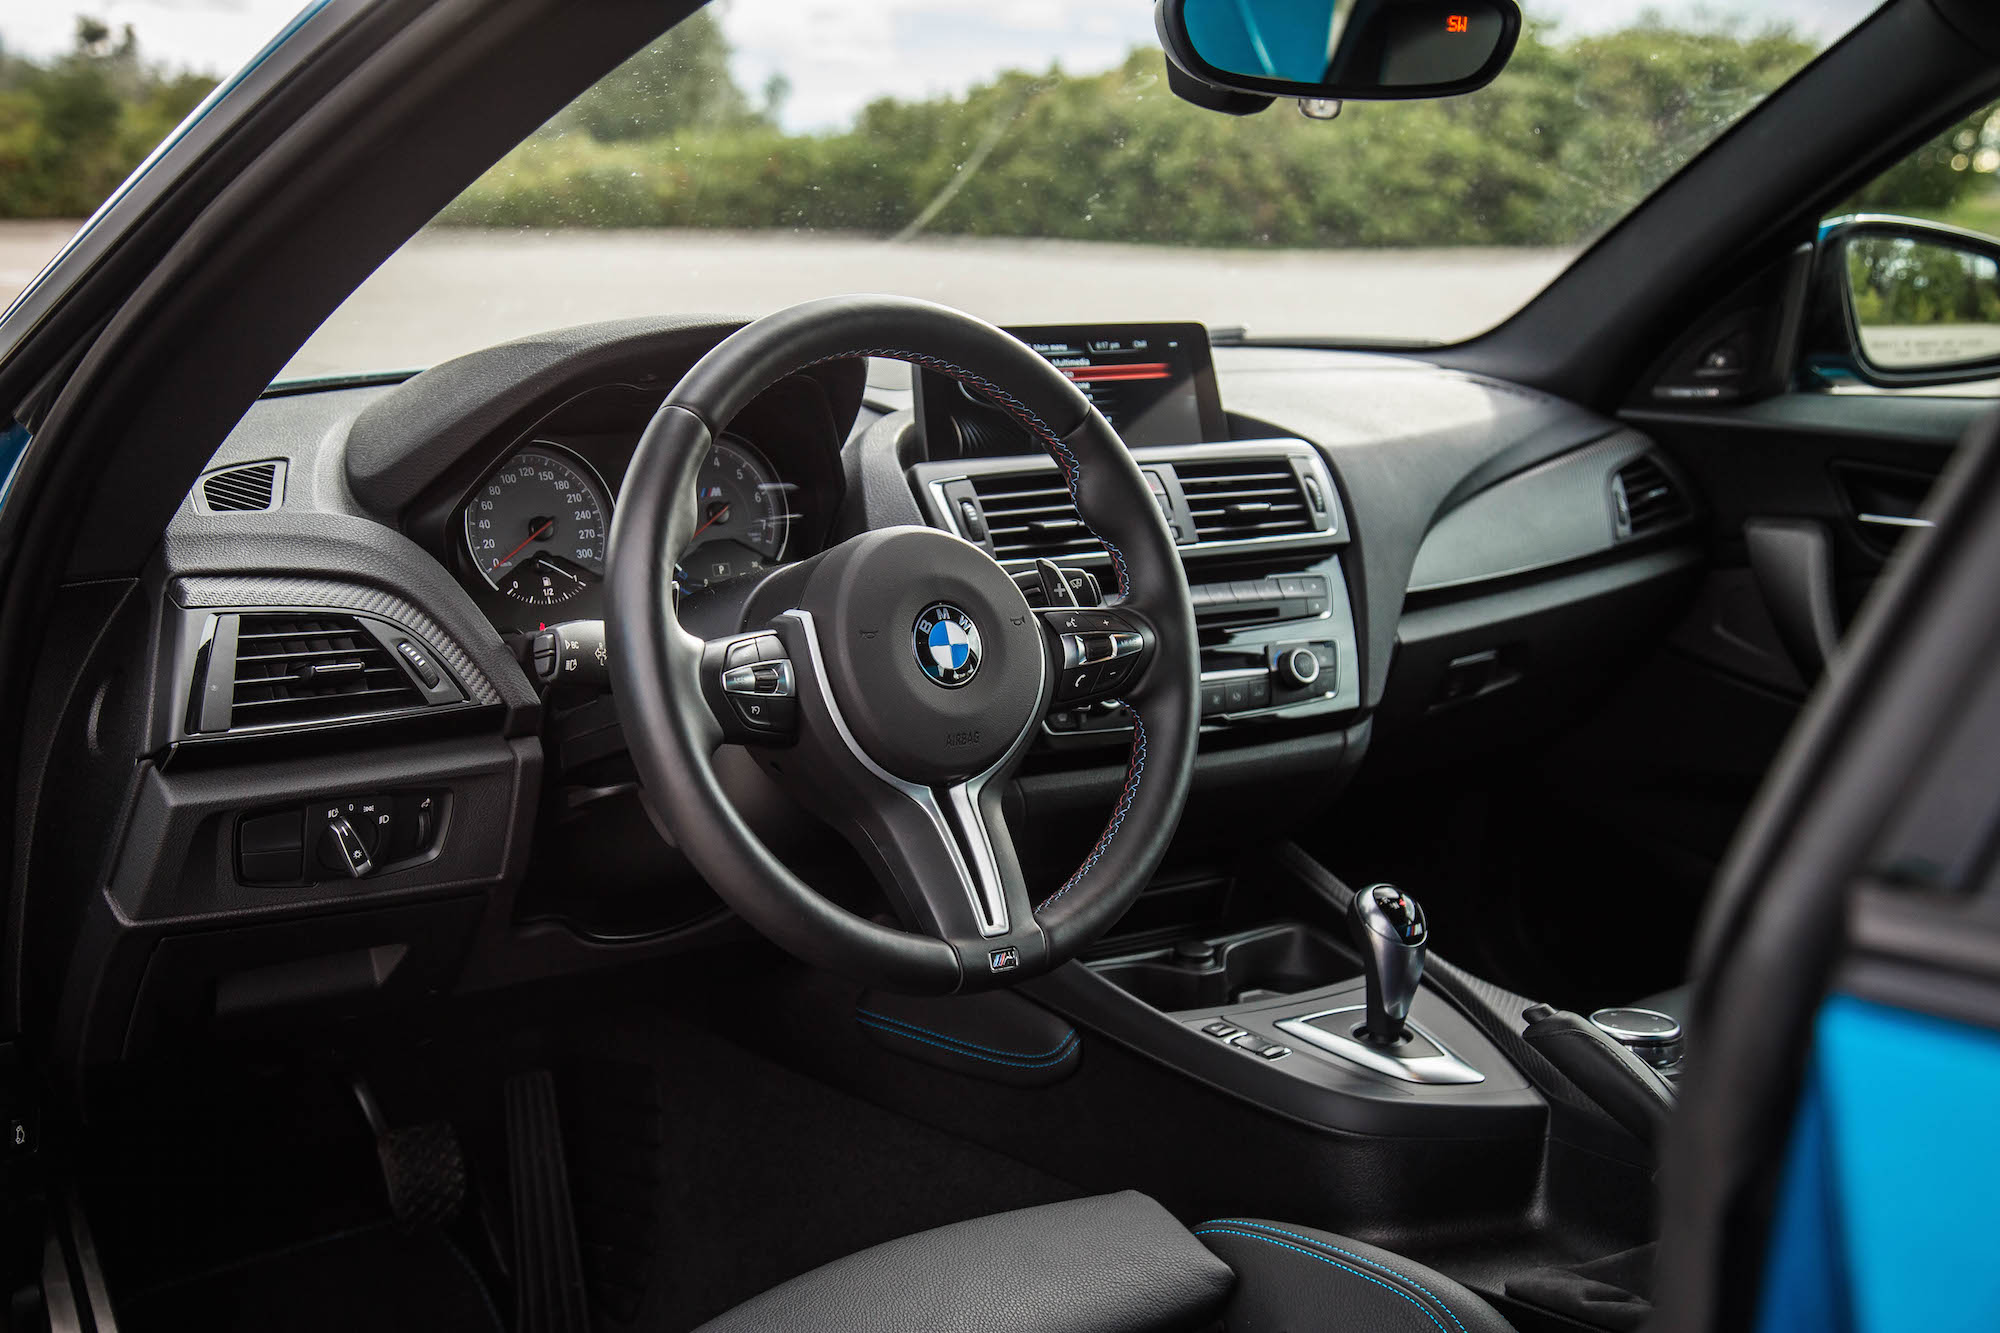 bmw m2 interior 2018 bmw m2 pure performance review 2016 bmw m2 review autonxt 2016 bmw m2. Black Bedroom Furniture Sets. Home Design Ideas